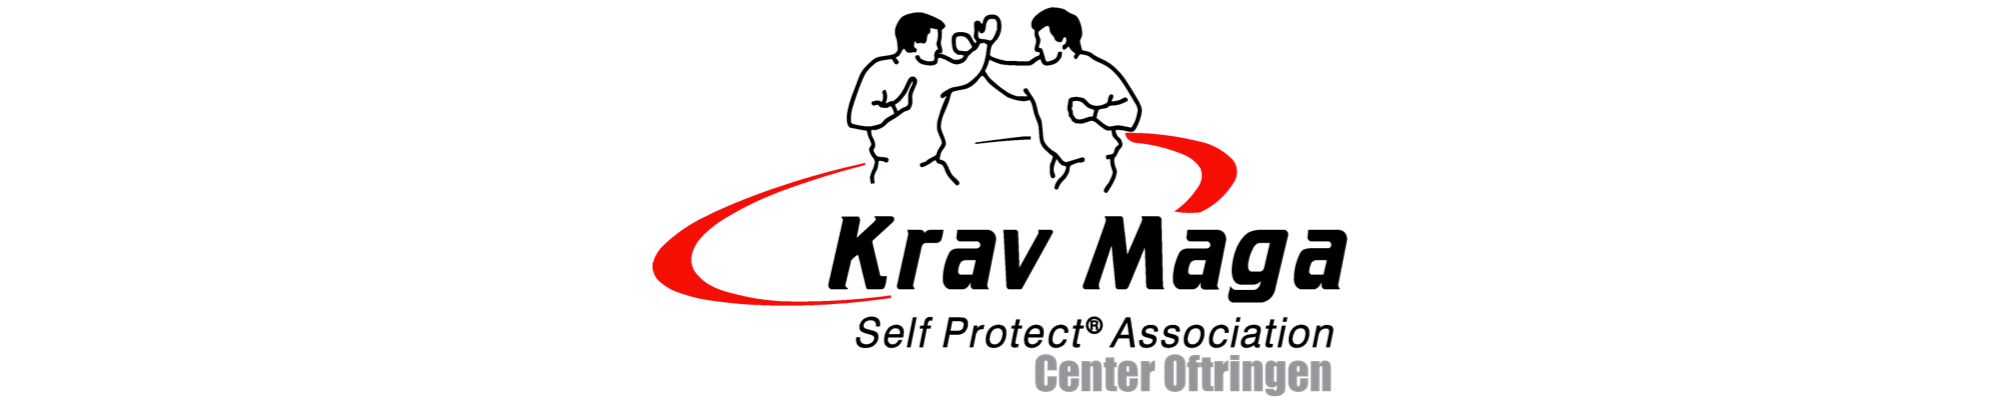 Krav Maga Center Oftringen Logo